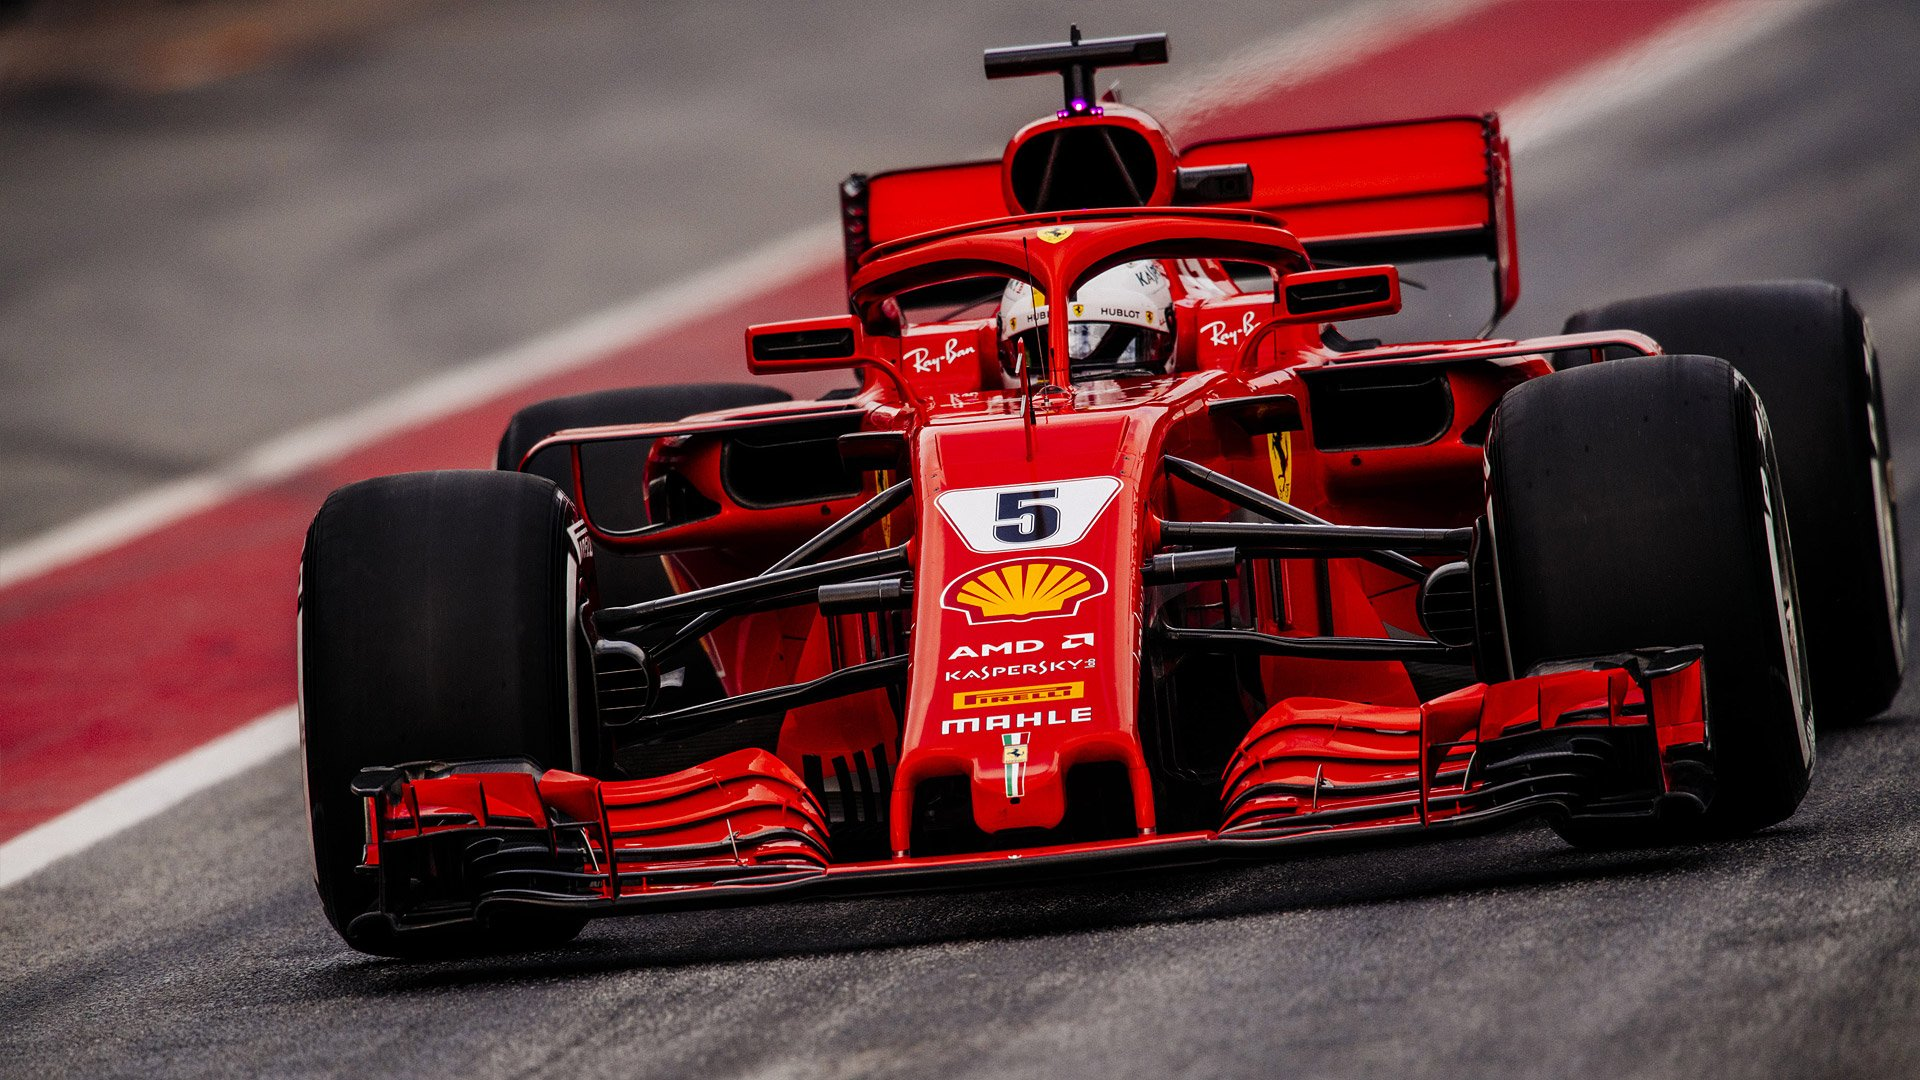 ferrari f1 reveals using metal am systems from renishaw for fast part production 3d printing. Black Bedroom Furniture Sets. Home Design Ideas